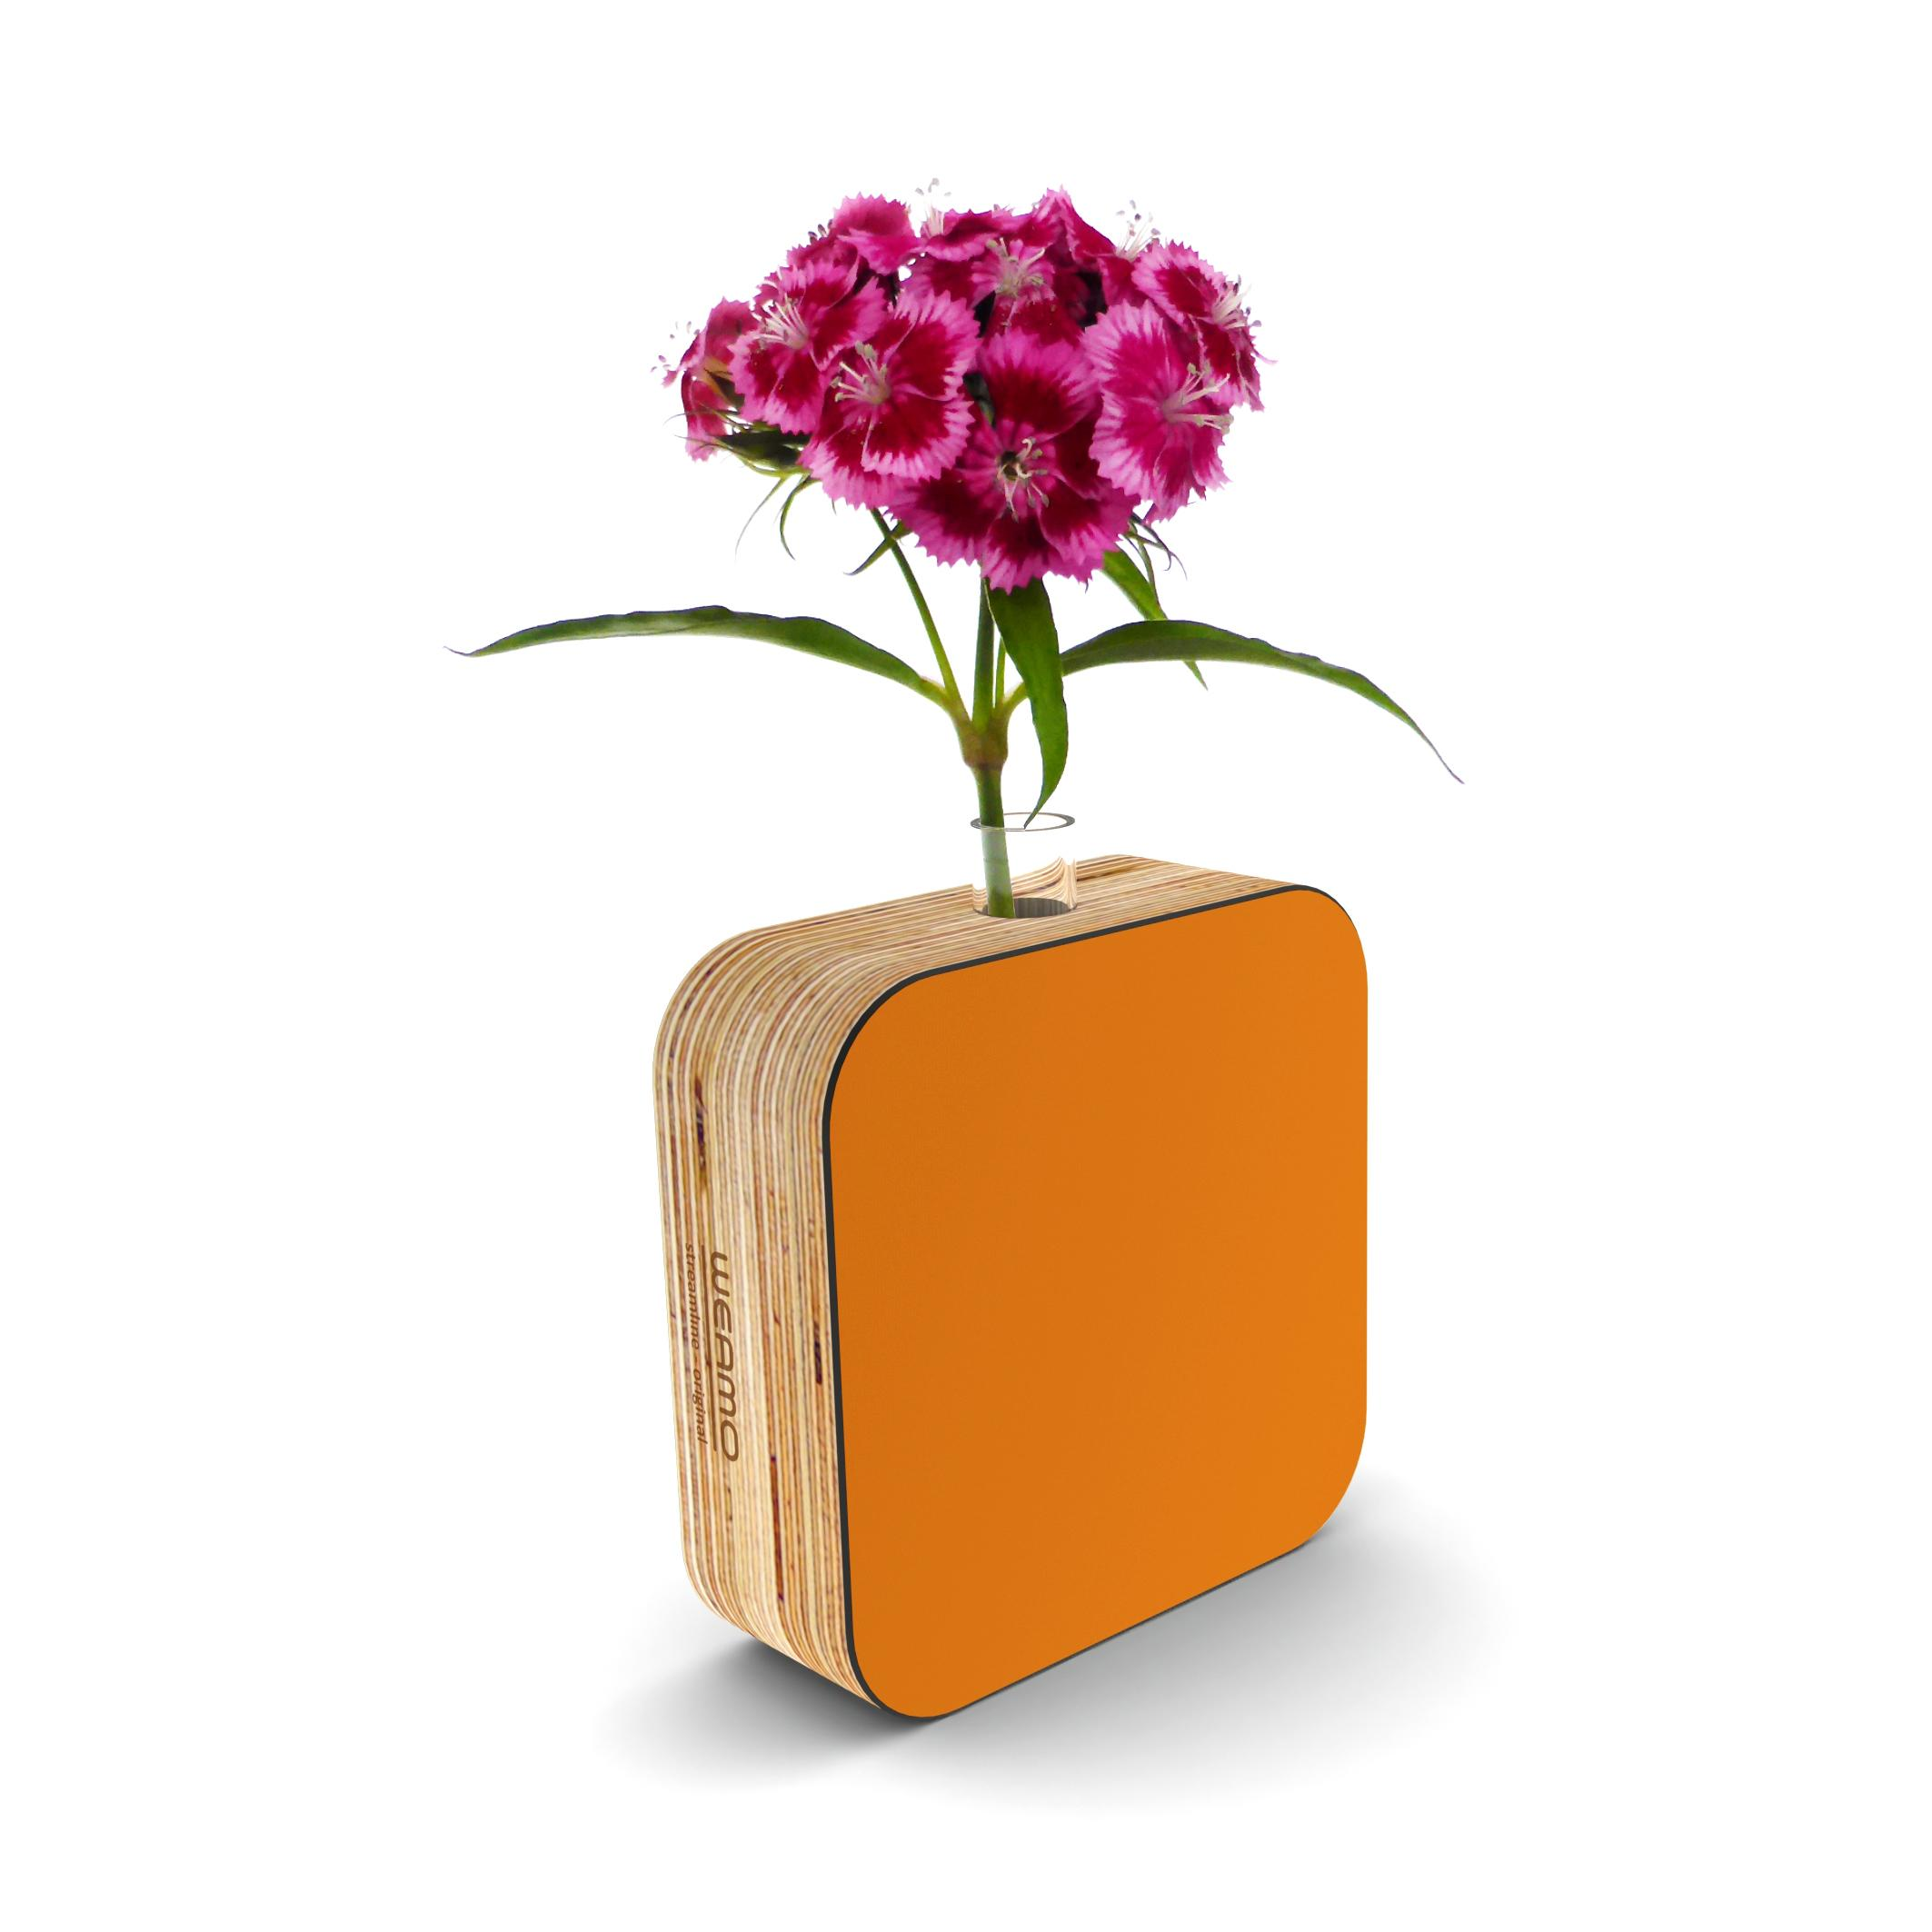 Streamline Original Bud Vase - Ginger Snap Orange